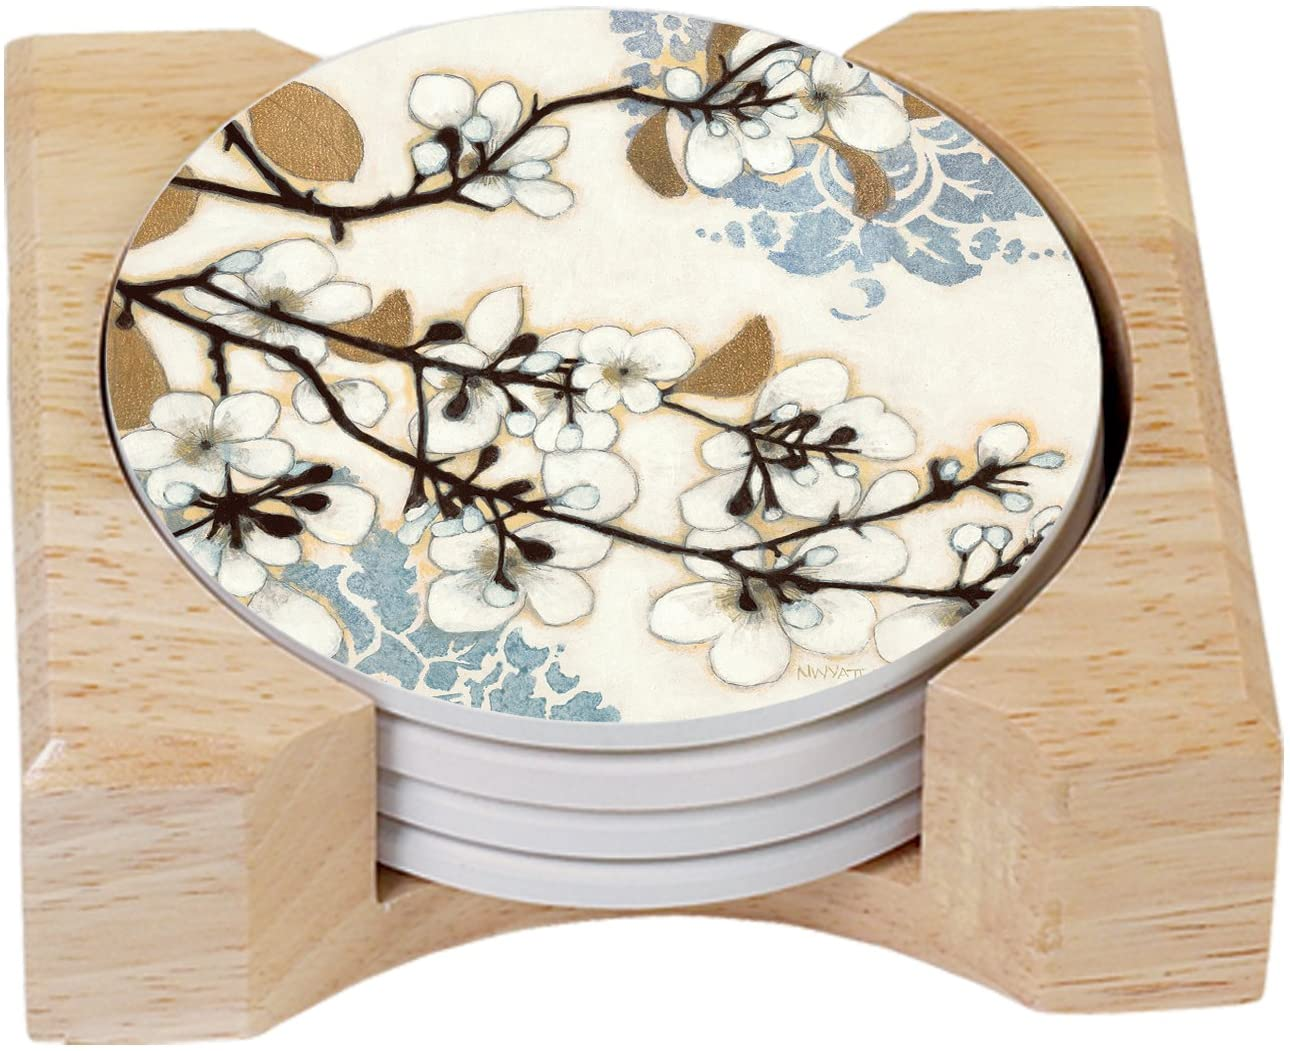 Counterart dogwood branch design absorbent coasters in wooden holder